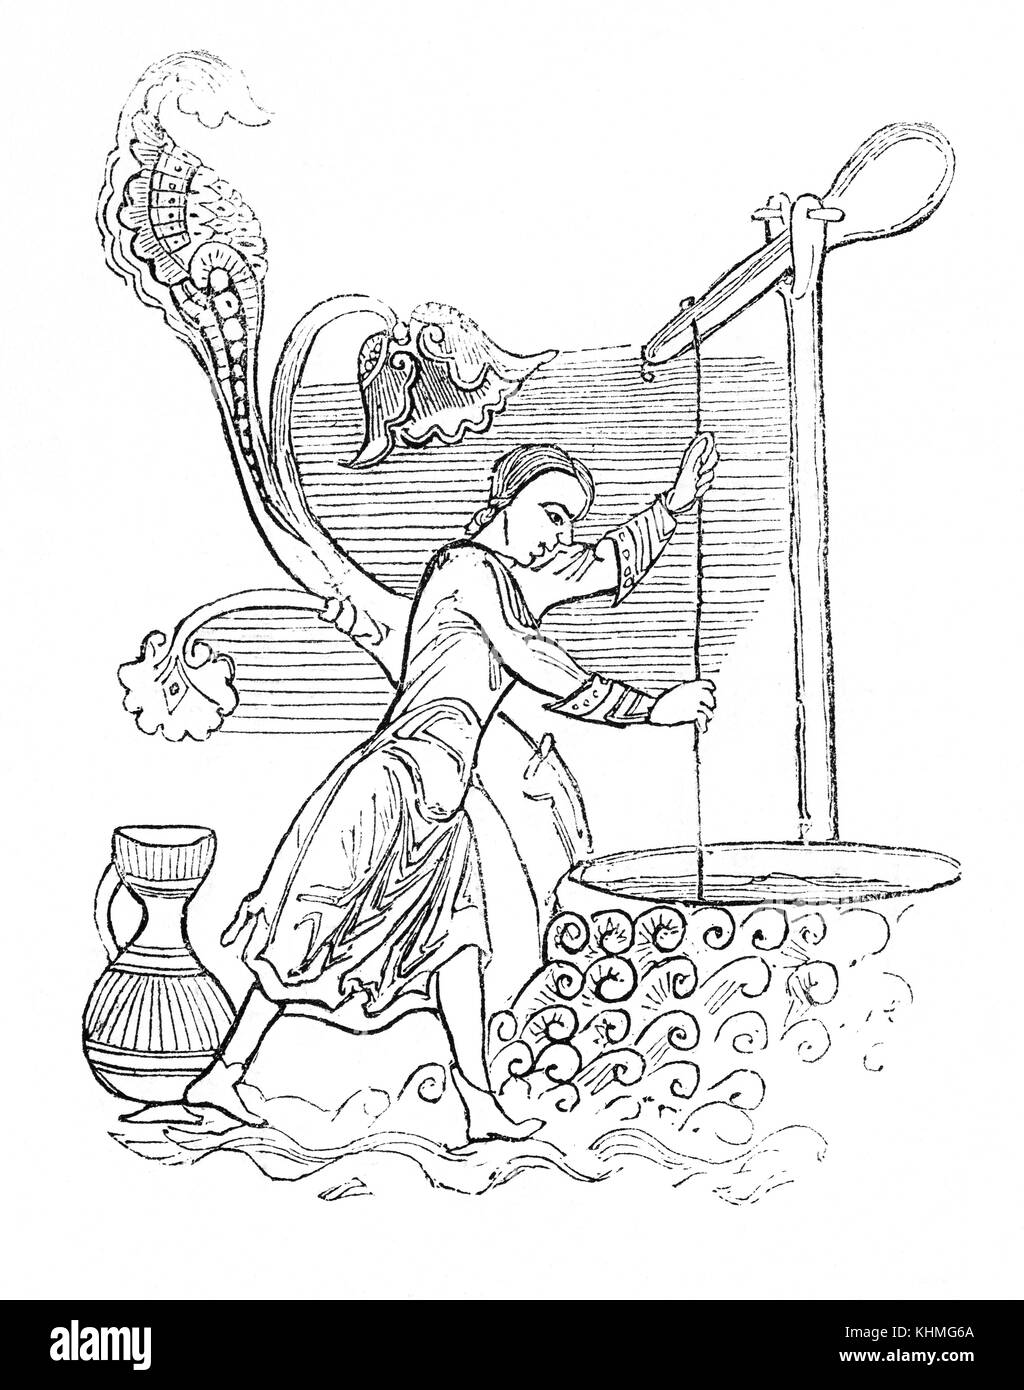 Using basic Anglo Saxon technology, a woman raising water from a well with a loaded lever in 9th Century England - Stock Image